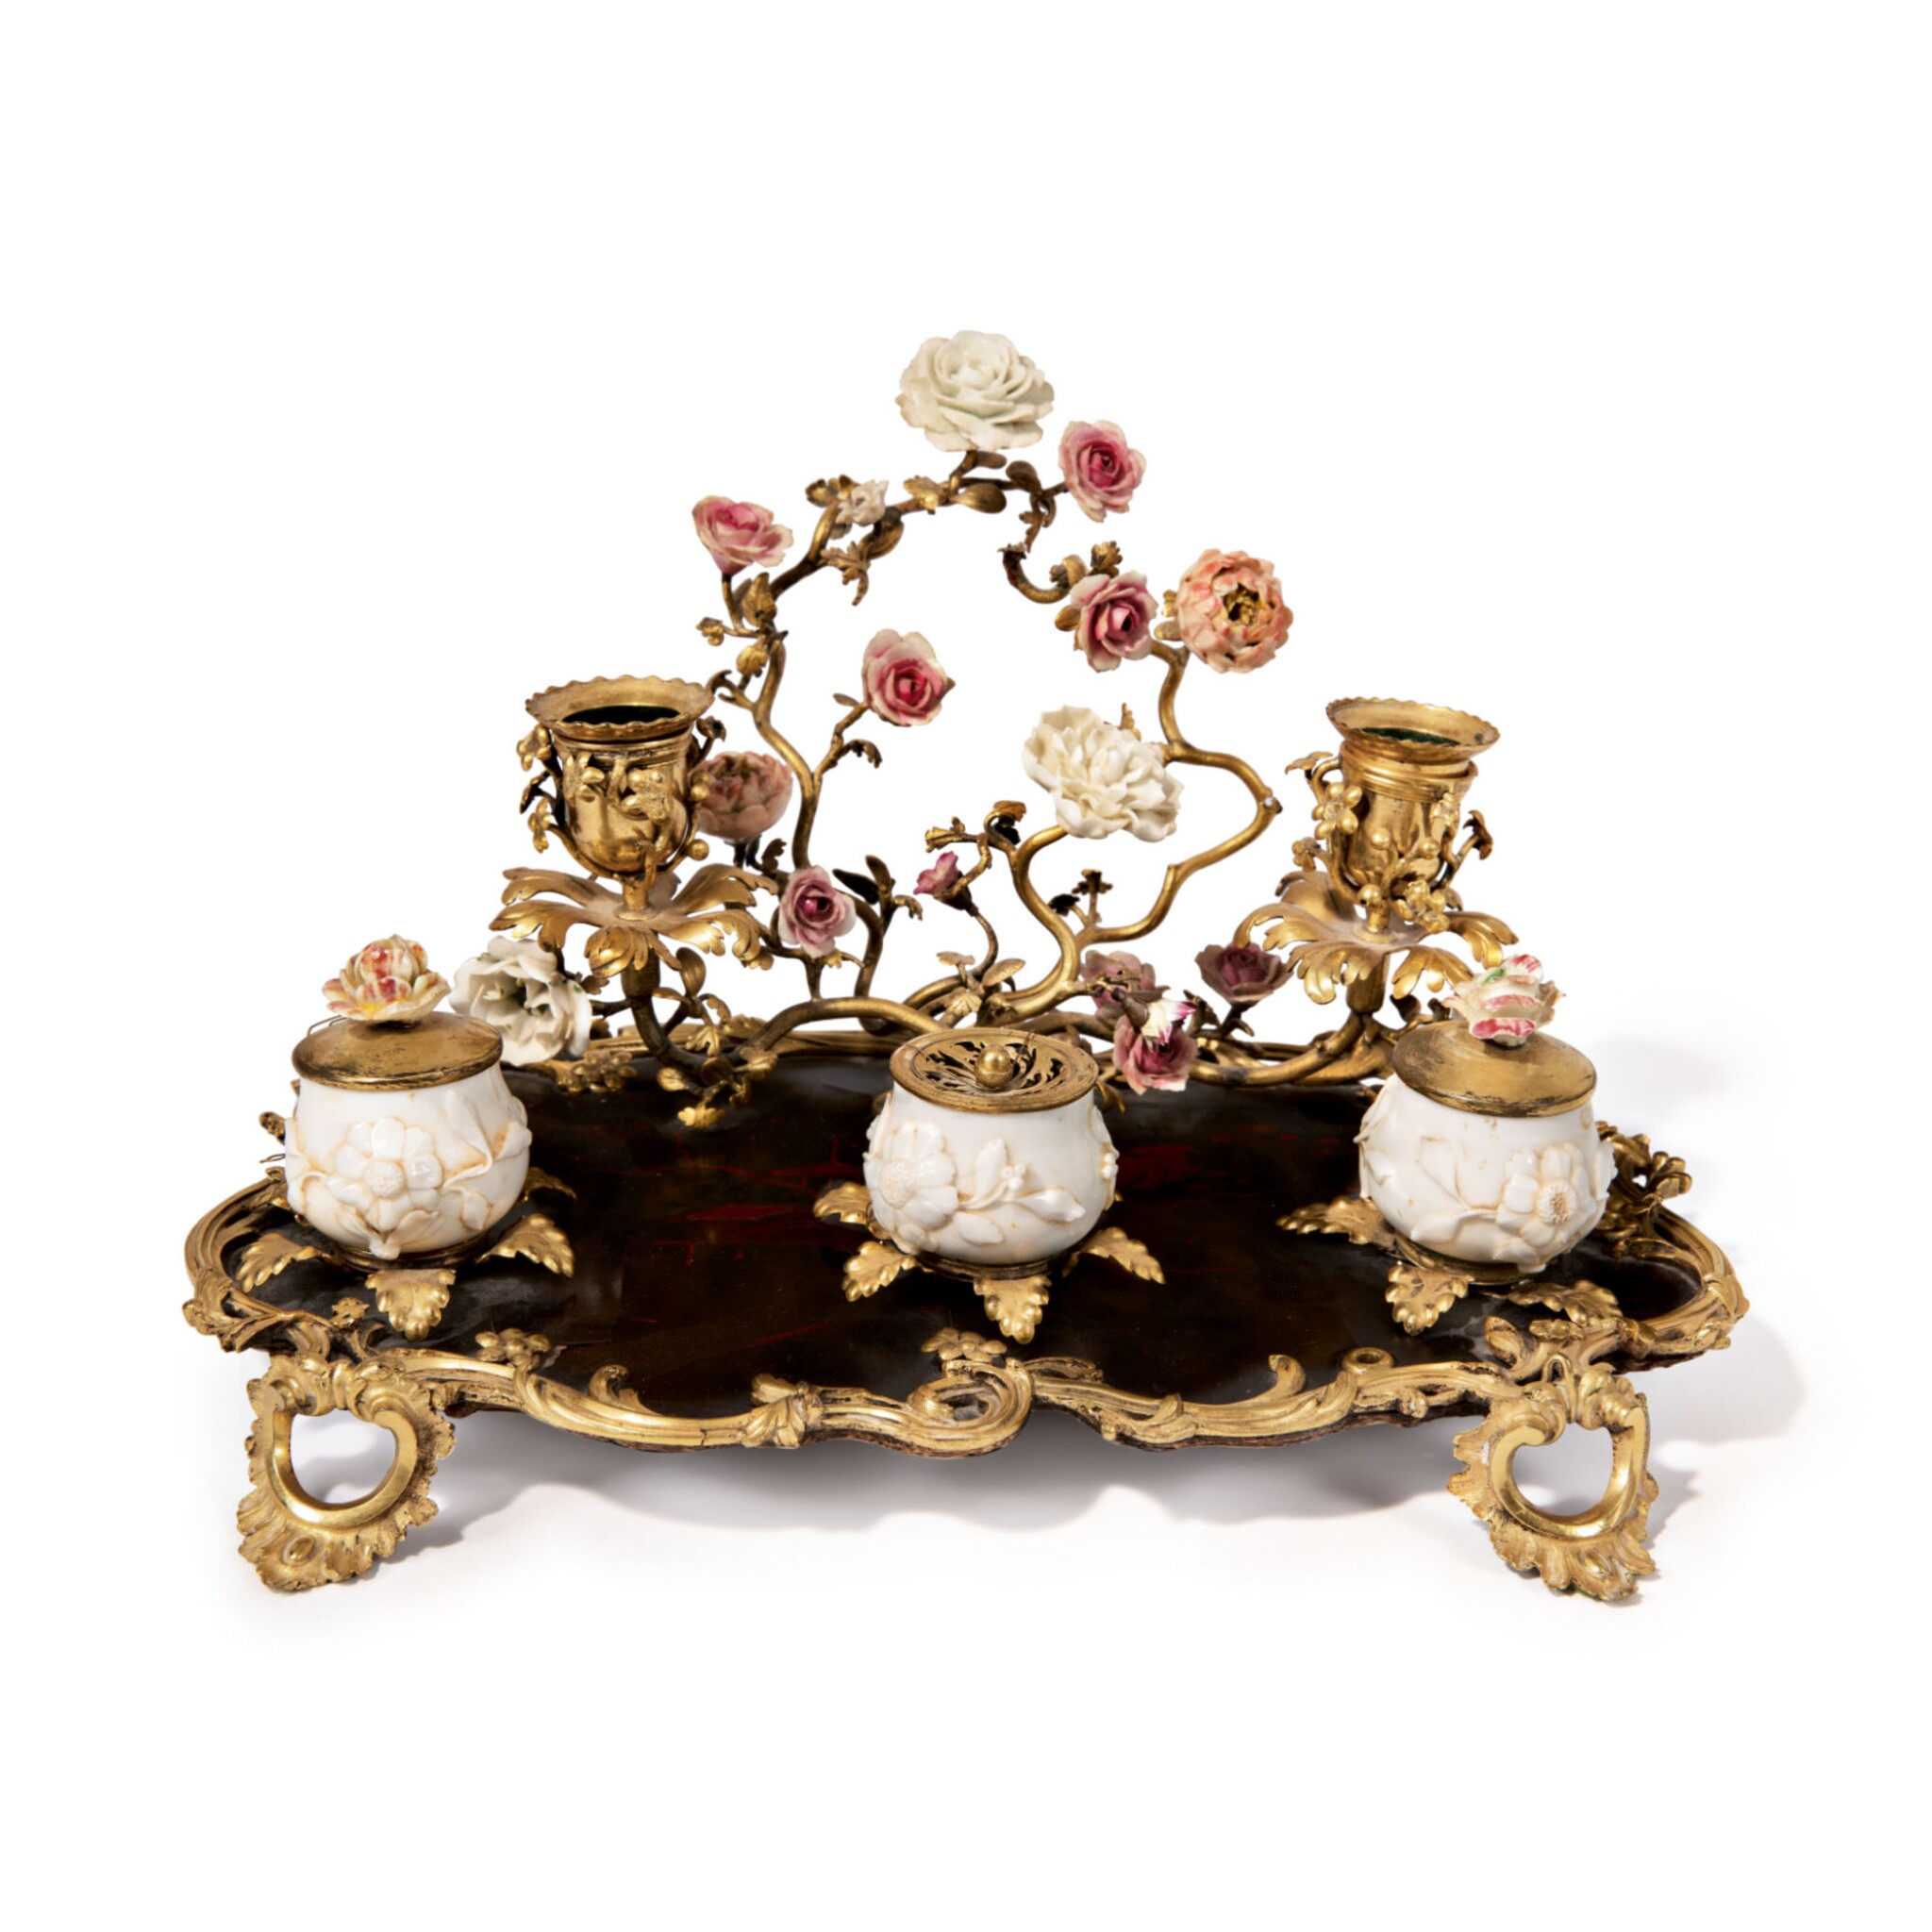 View full screen - View 1 of Lot 723. A LOUIS XV GILT BRONZE, LACQUER AND PORCELAIN-MOUNTED INKSTAND, MID-18TH CENTURY.